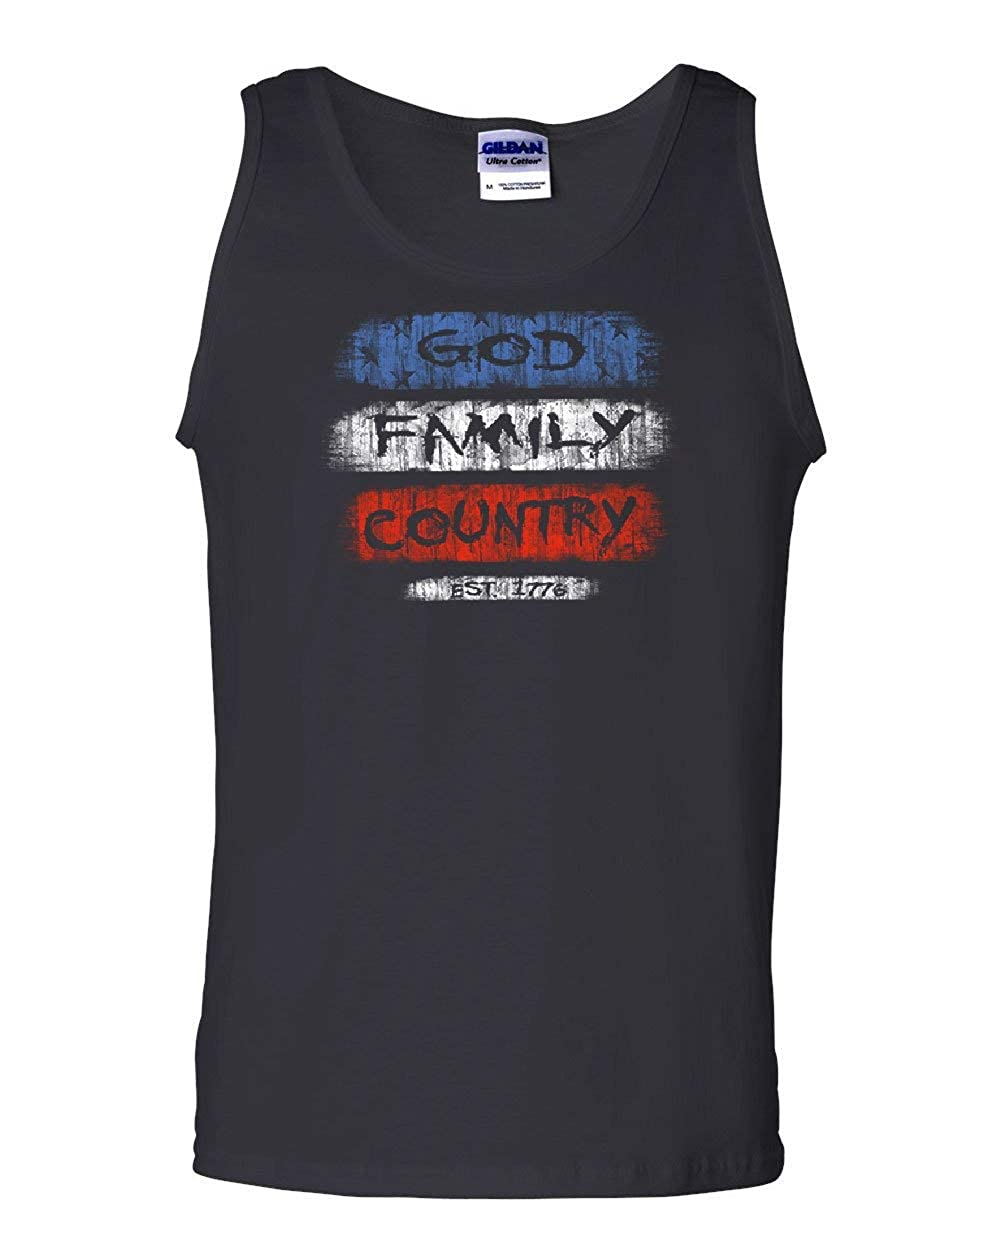 God Family Country Est 1776 T-Shirt 4th of July American Pride Mens Tee Shirt